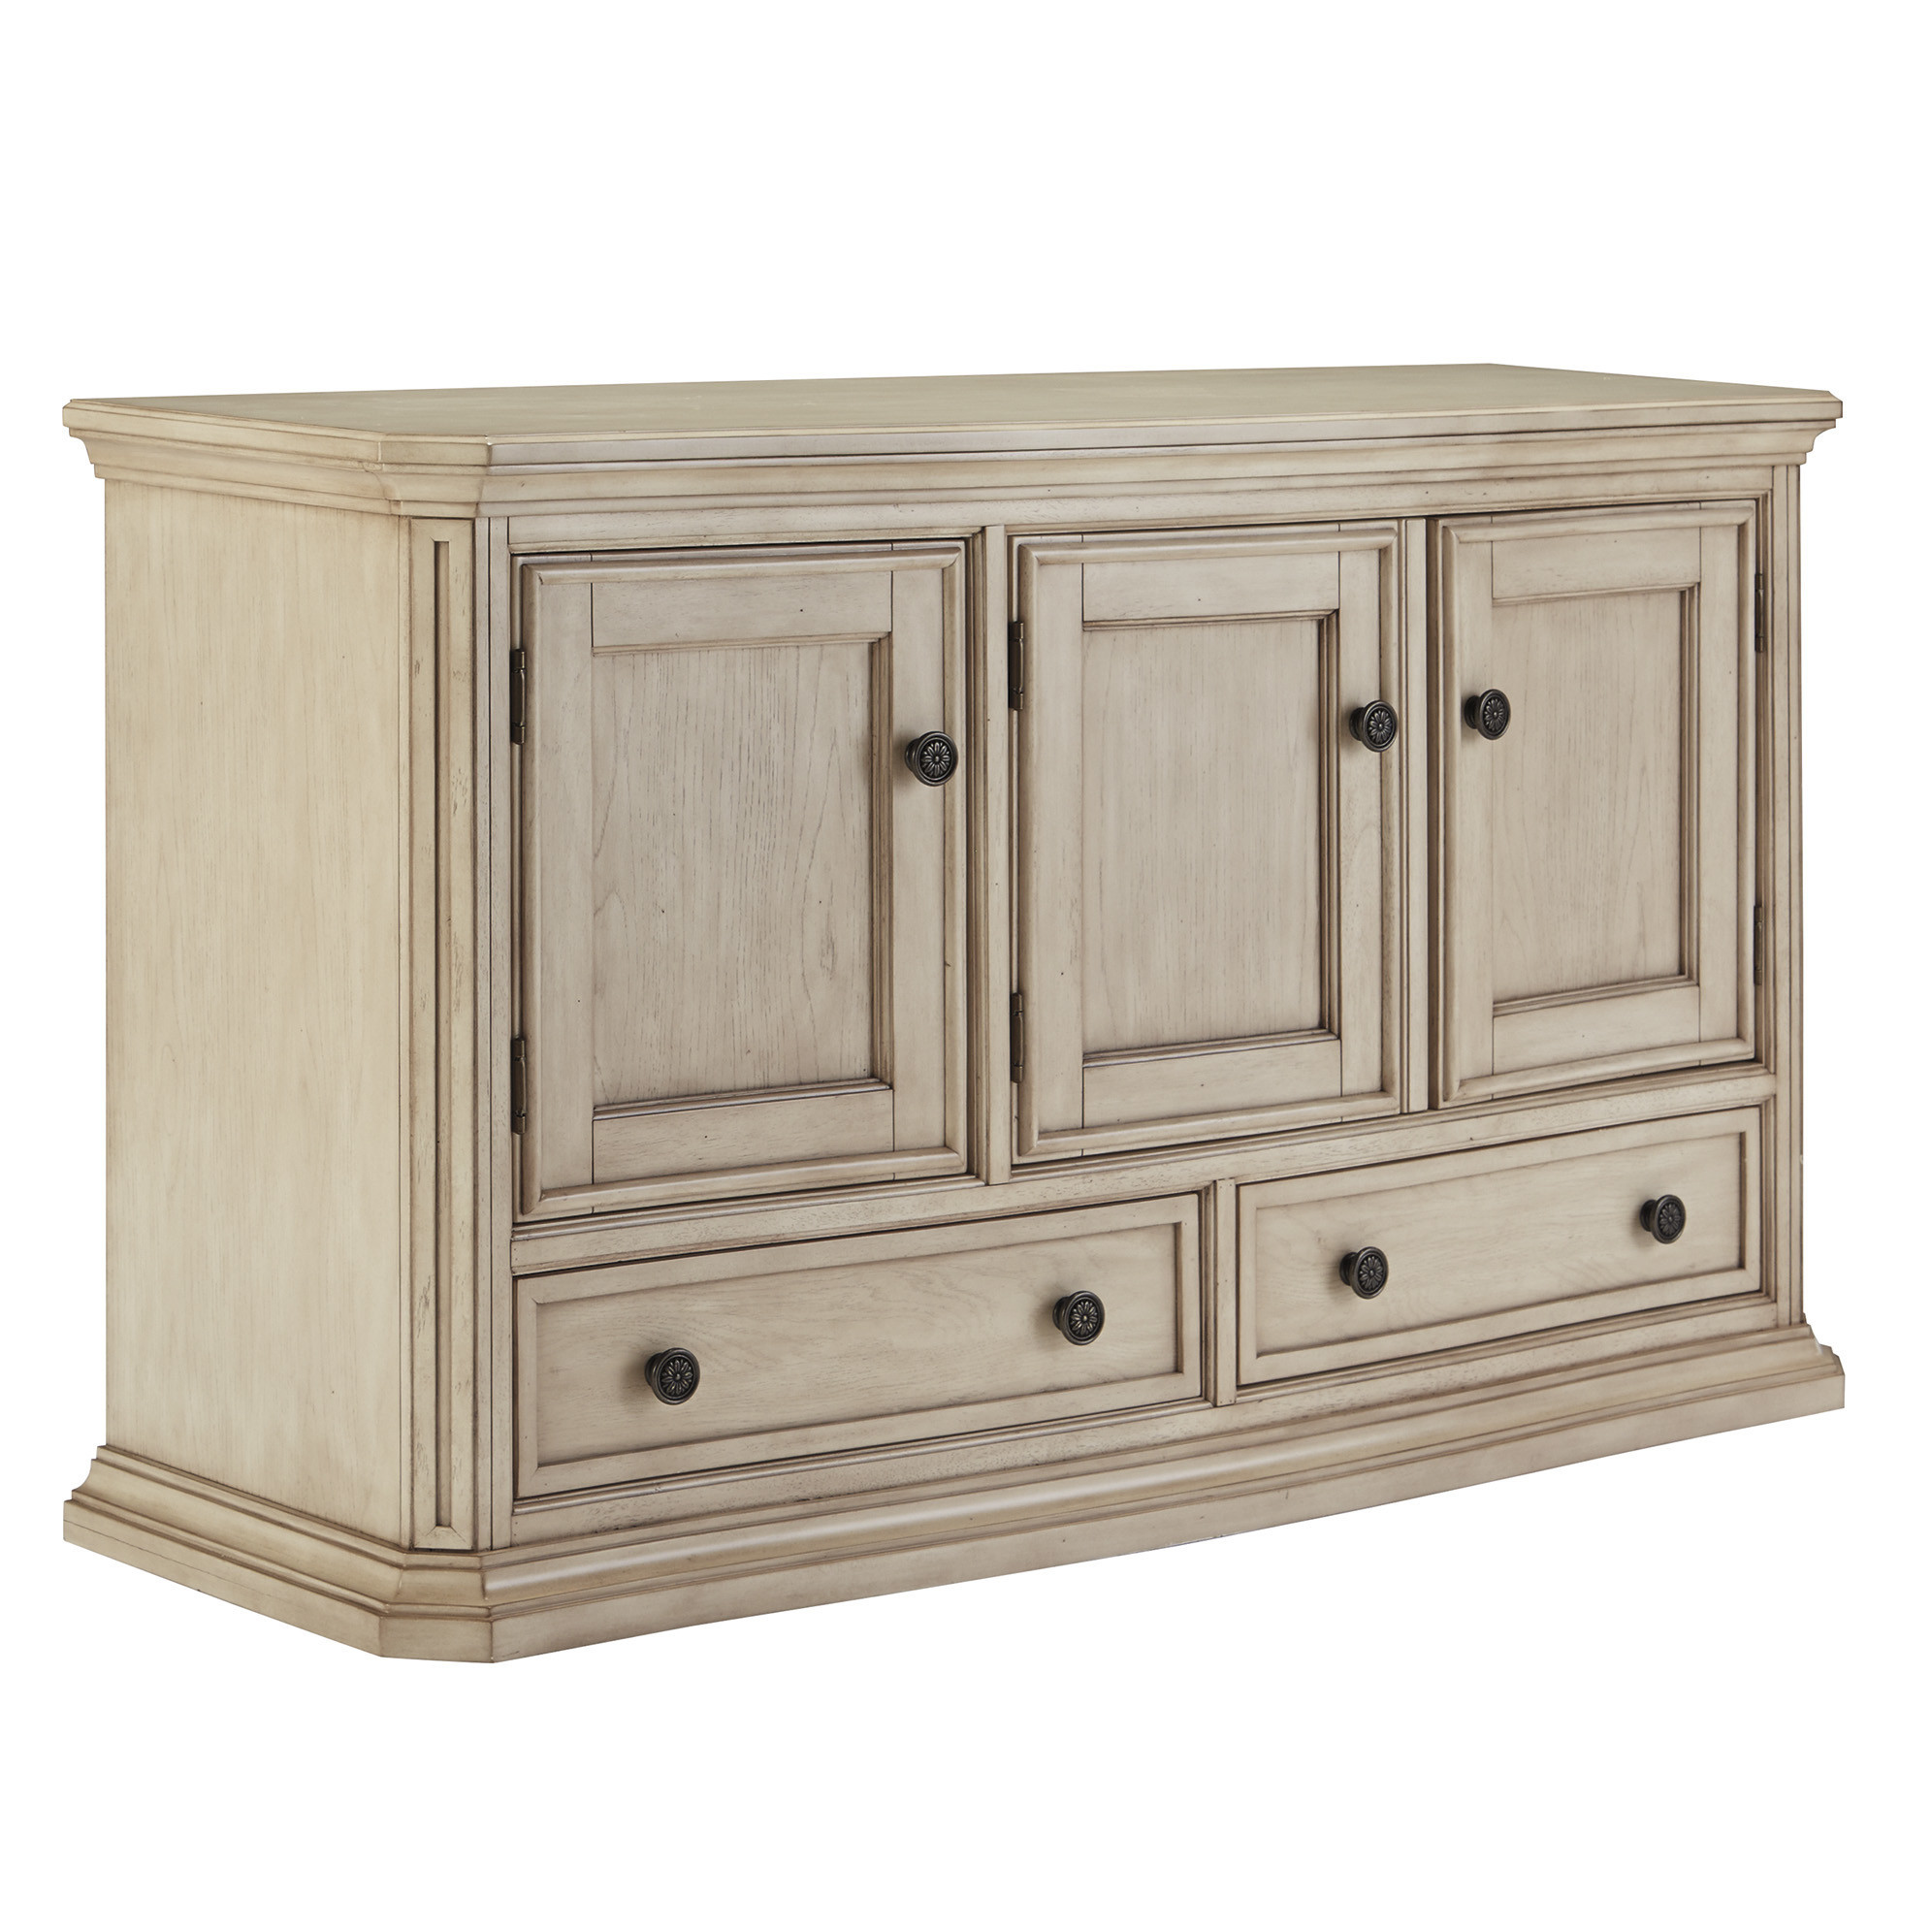 Best ideas about Dining Room Server . Save or Pin Signature Design by Ashley Dining Room Server & Reviews Now.